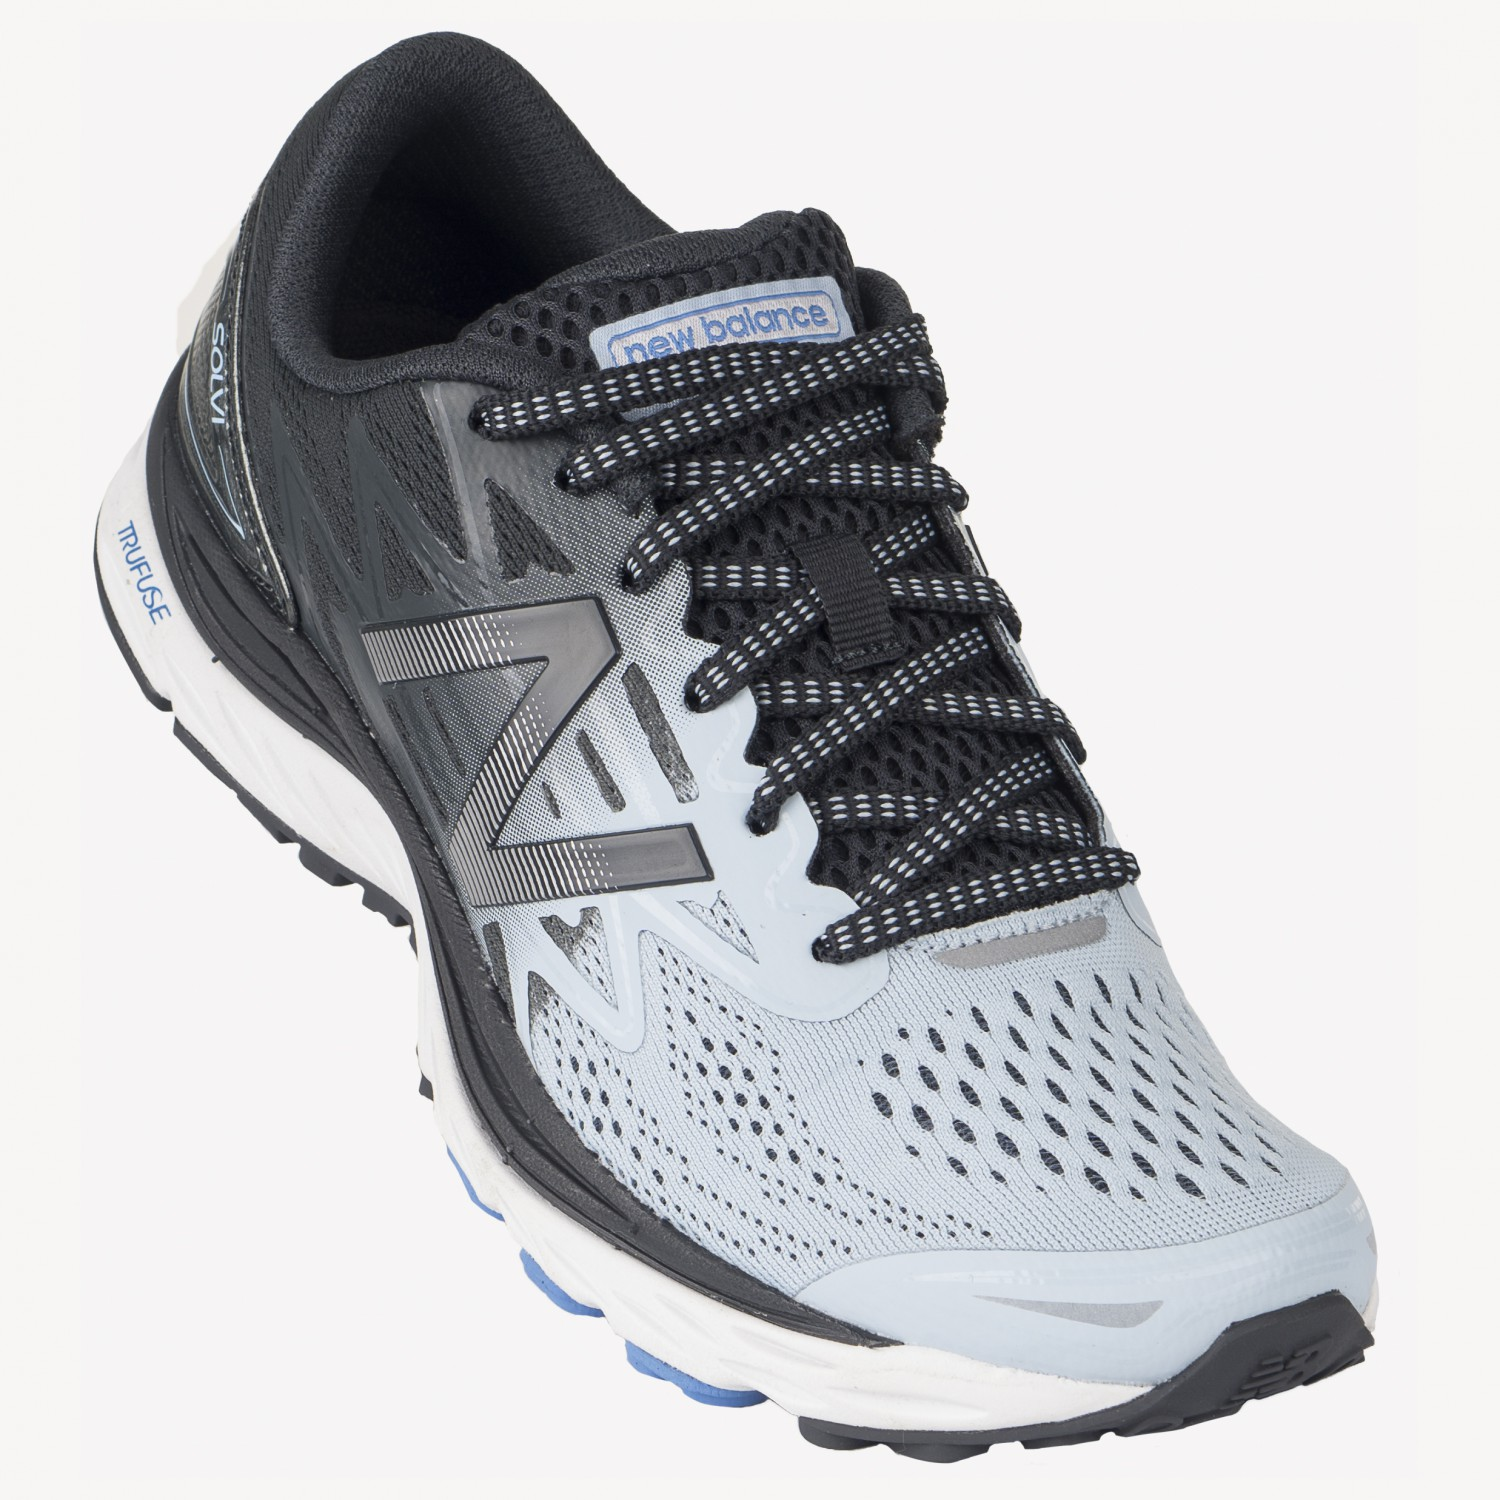 New Balance - Women's Solvi - Runningschuhe - Blue / Black | 6,5 (US)